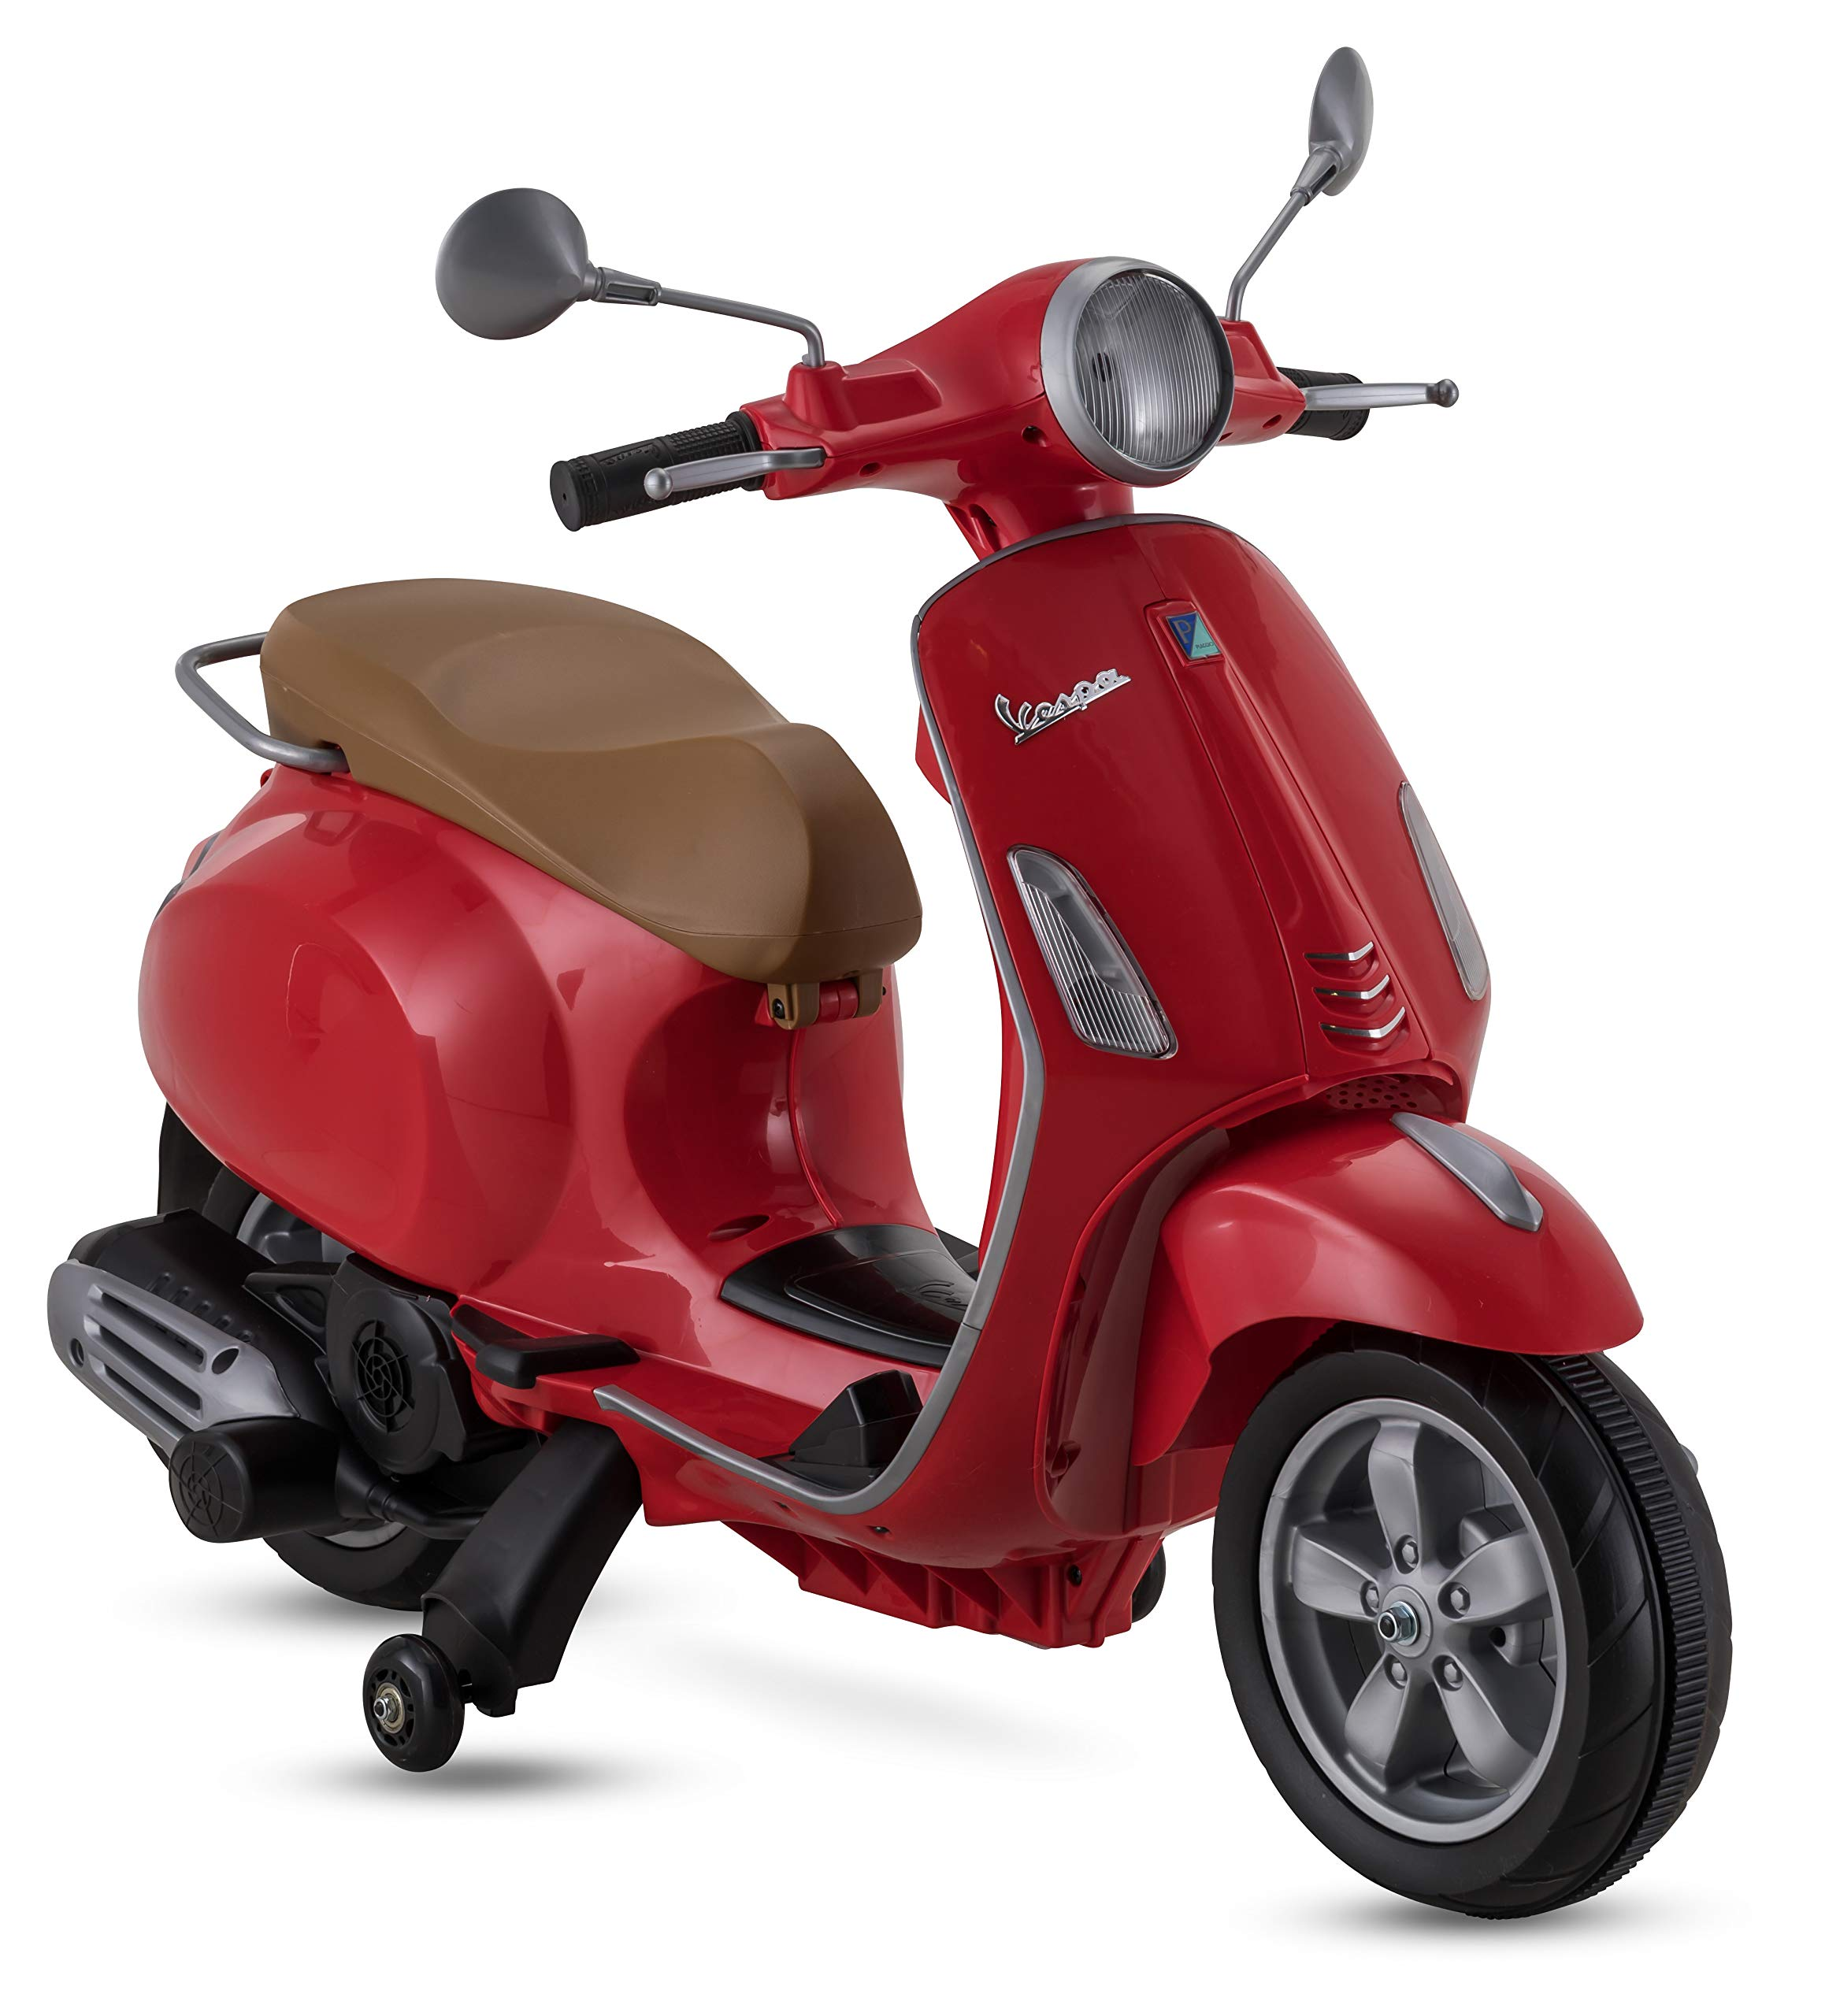 Kid Trax Vespa Scooter, 6V Ride-On Toy in Red by Kid Trax